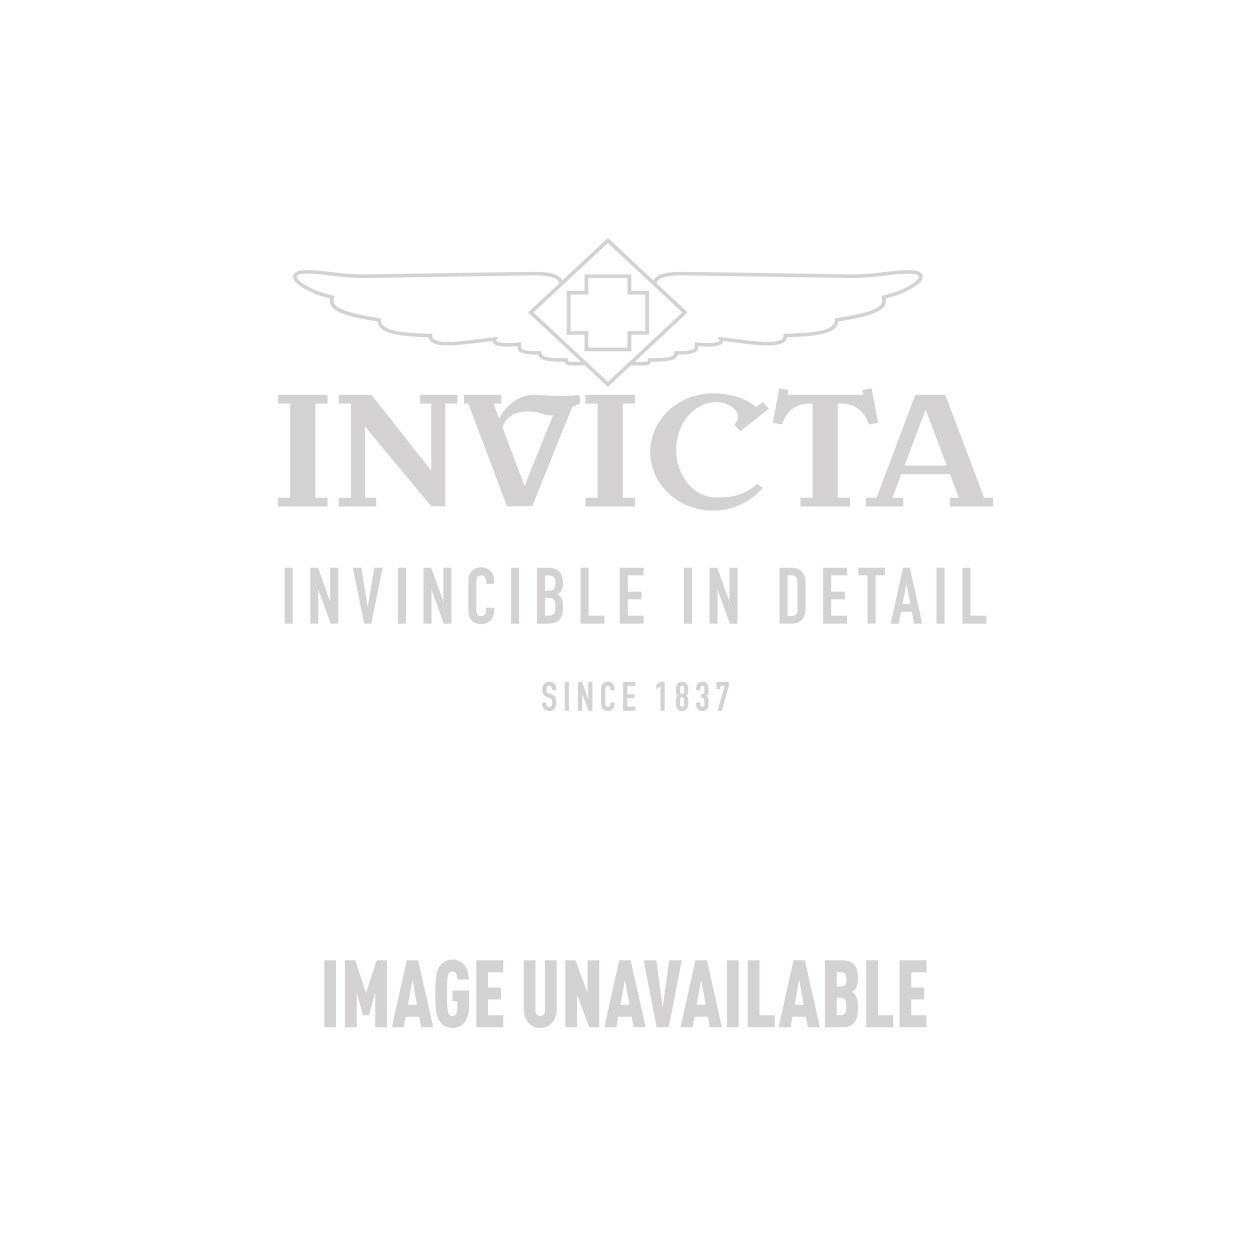 Invicta I-Force Quartz Watch - Stainless Steel case with Black tone Leather band - Model 14787